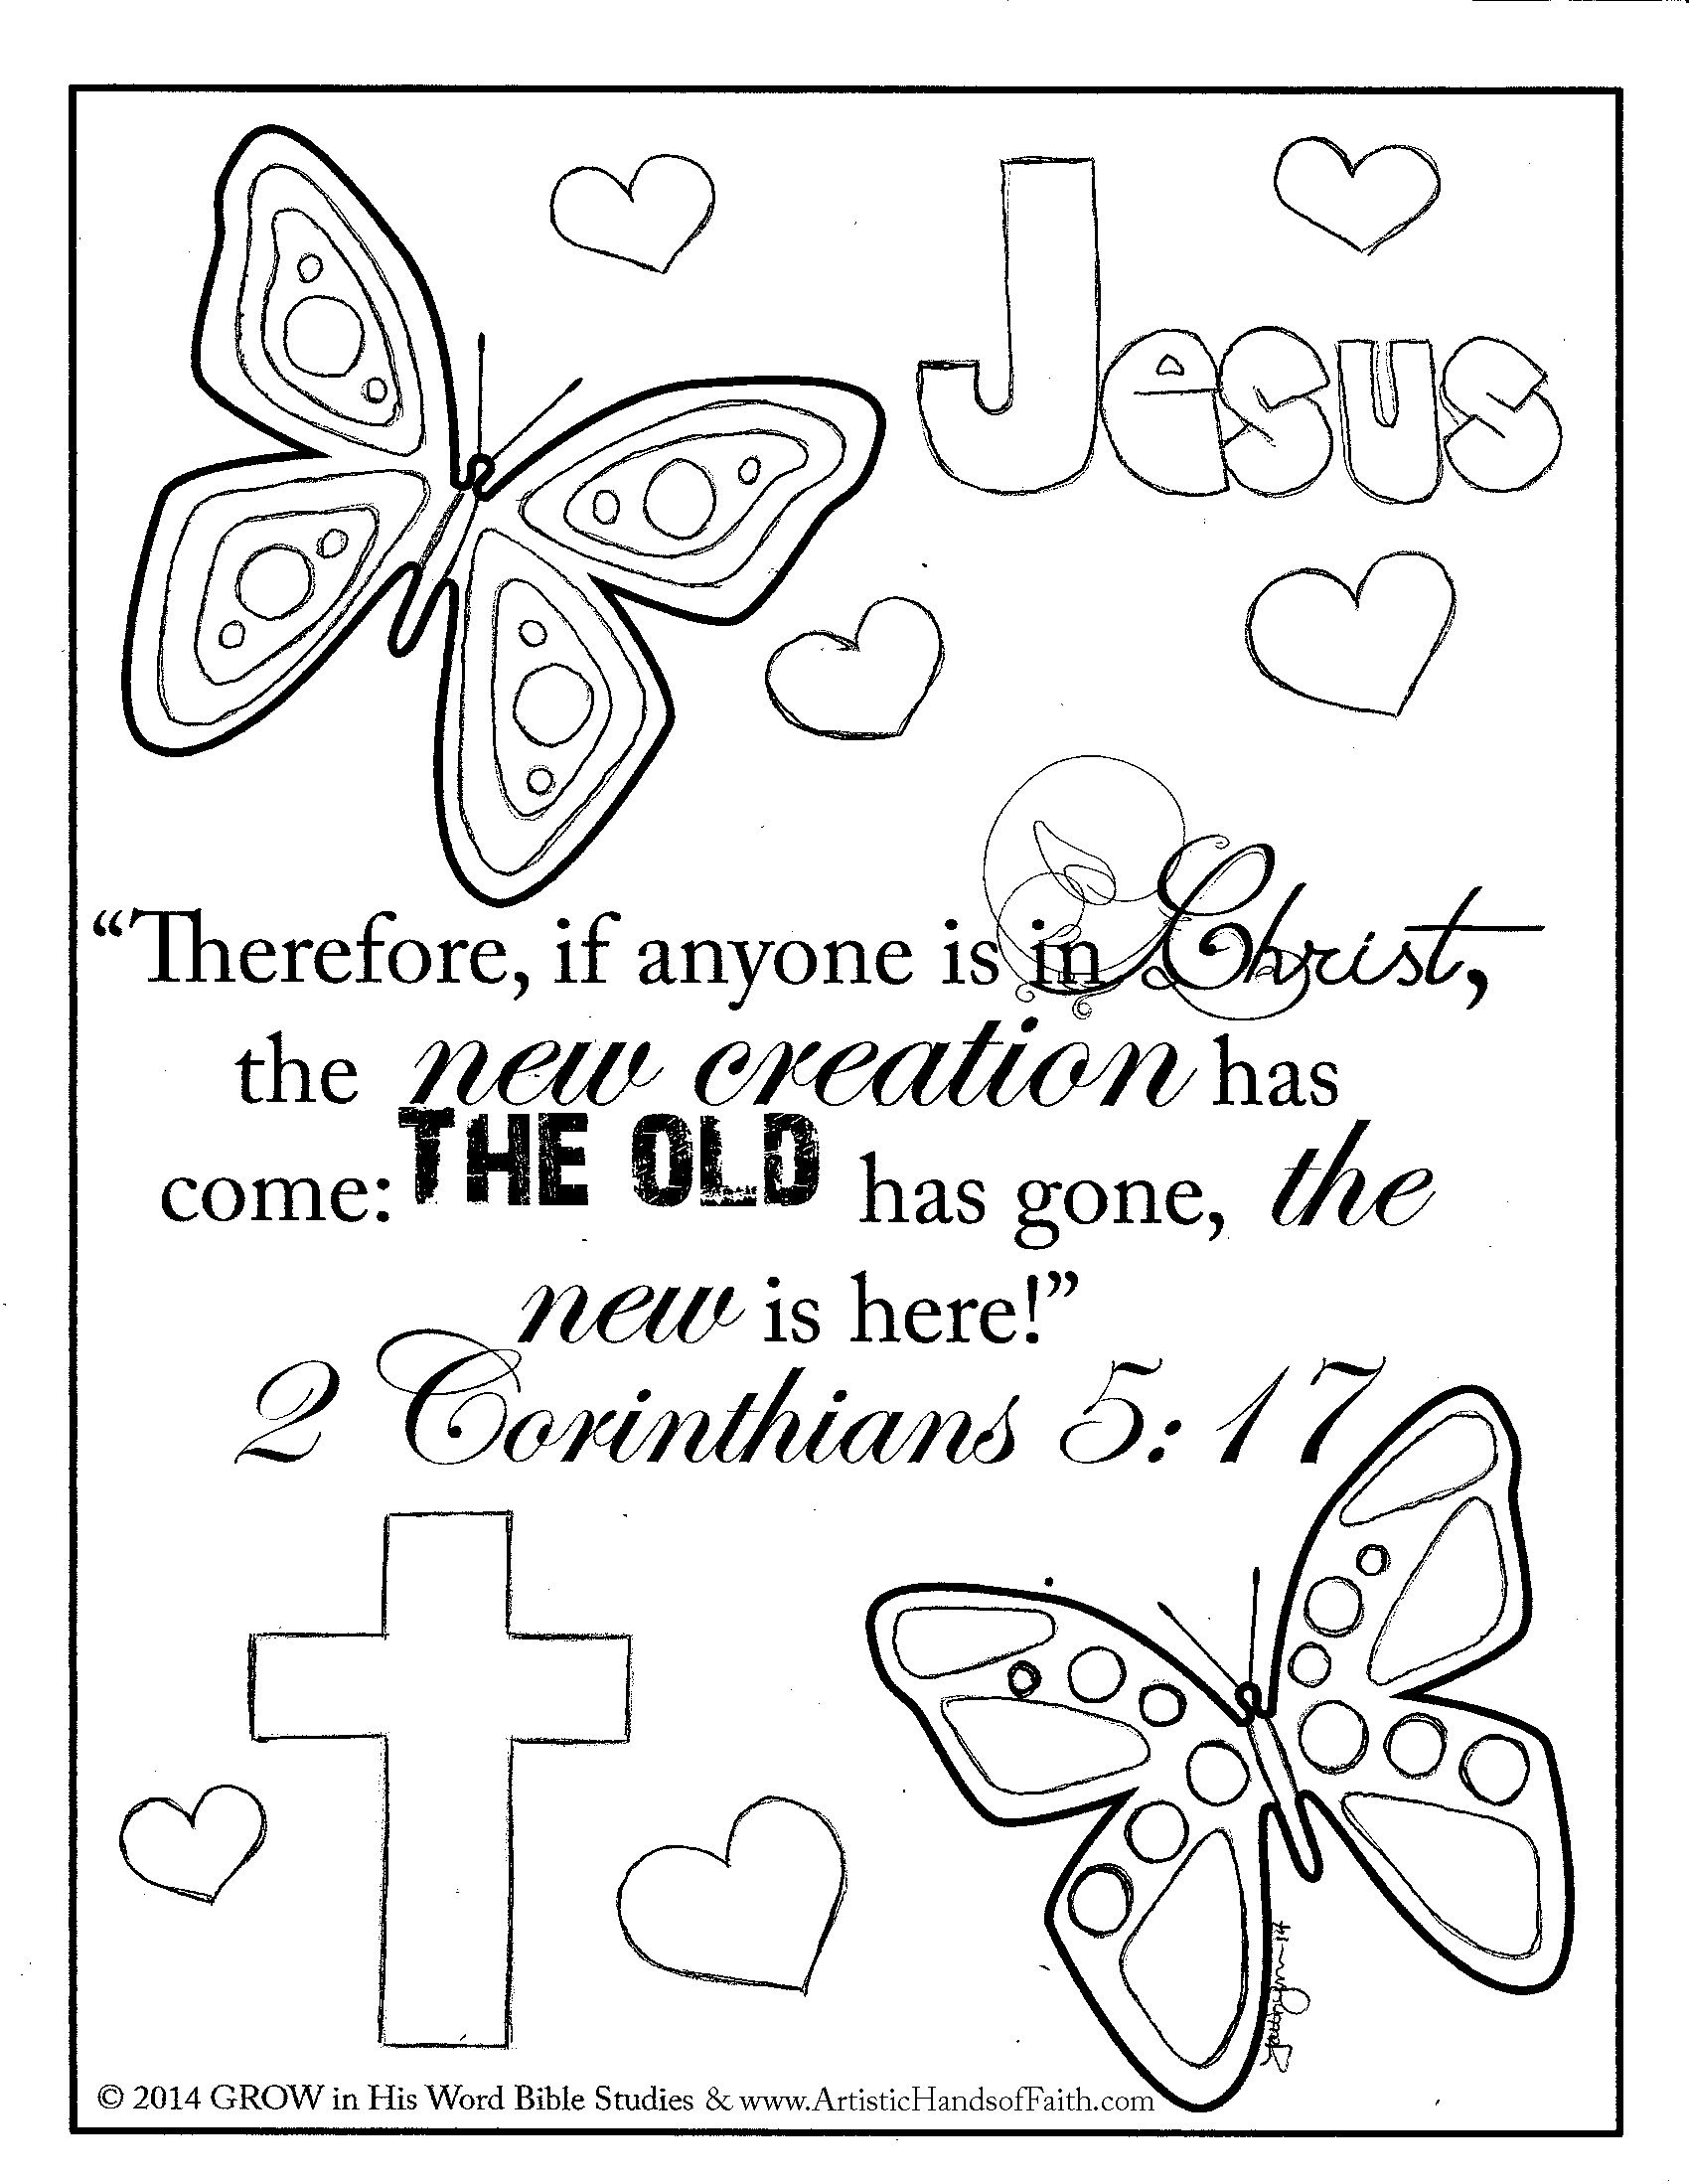 New creation free coloring pages coloring for kids abstract coloring pages bible verse